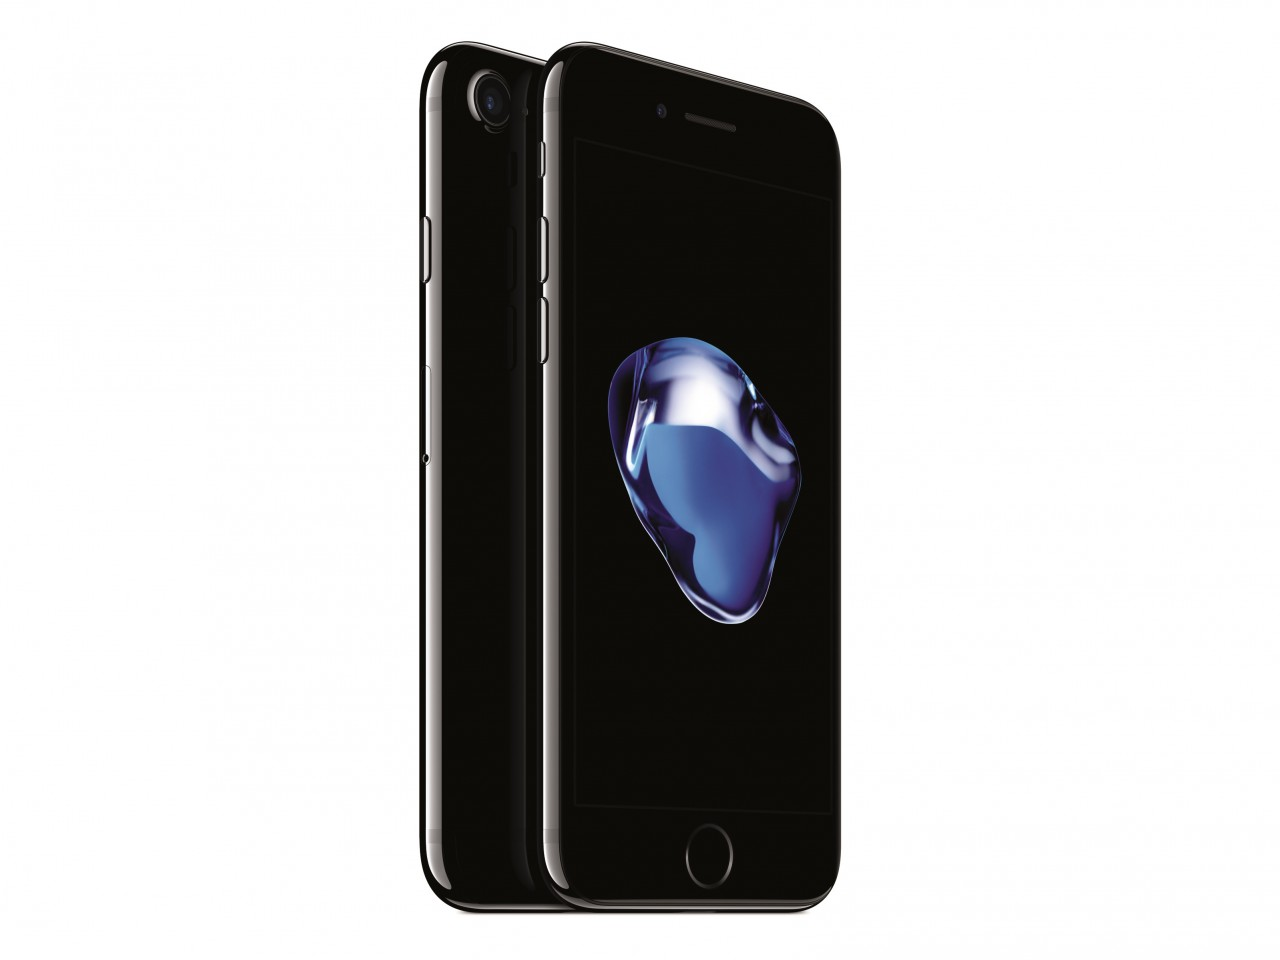 Apple Iphone 7 Jet Price In Pakistan Homeshopping Apple